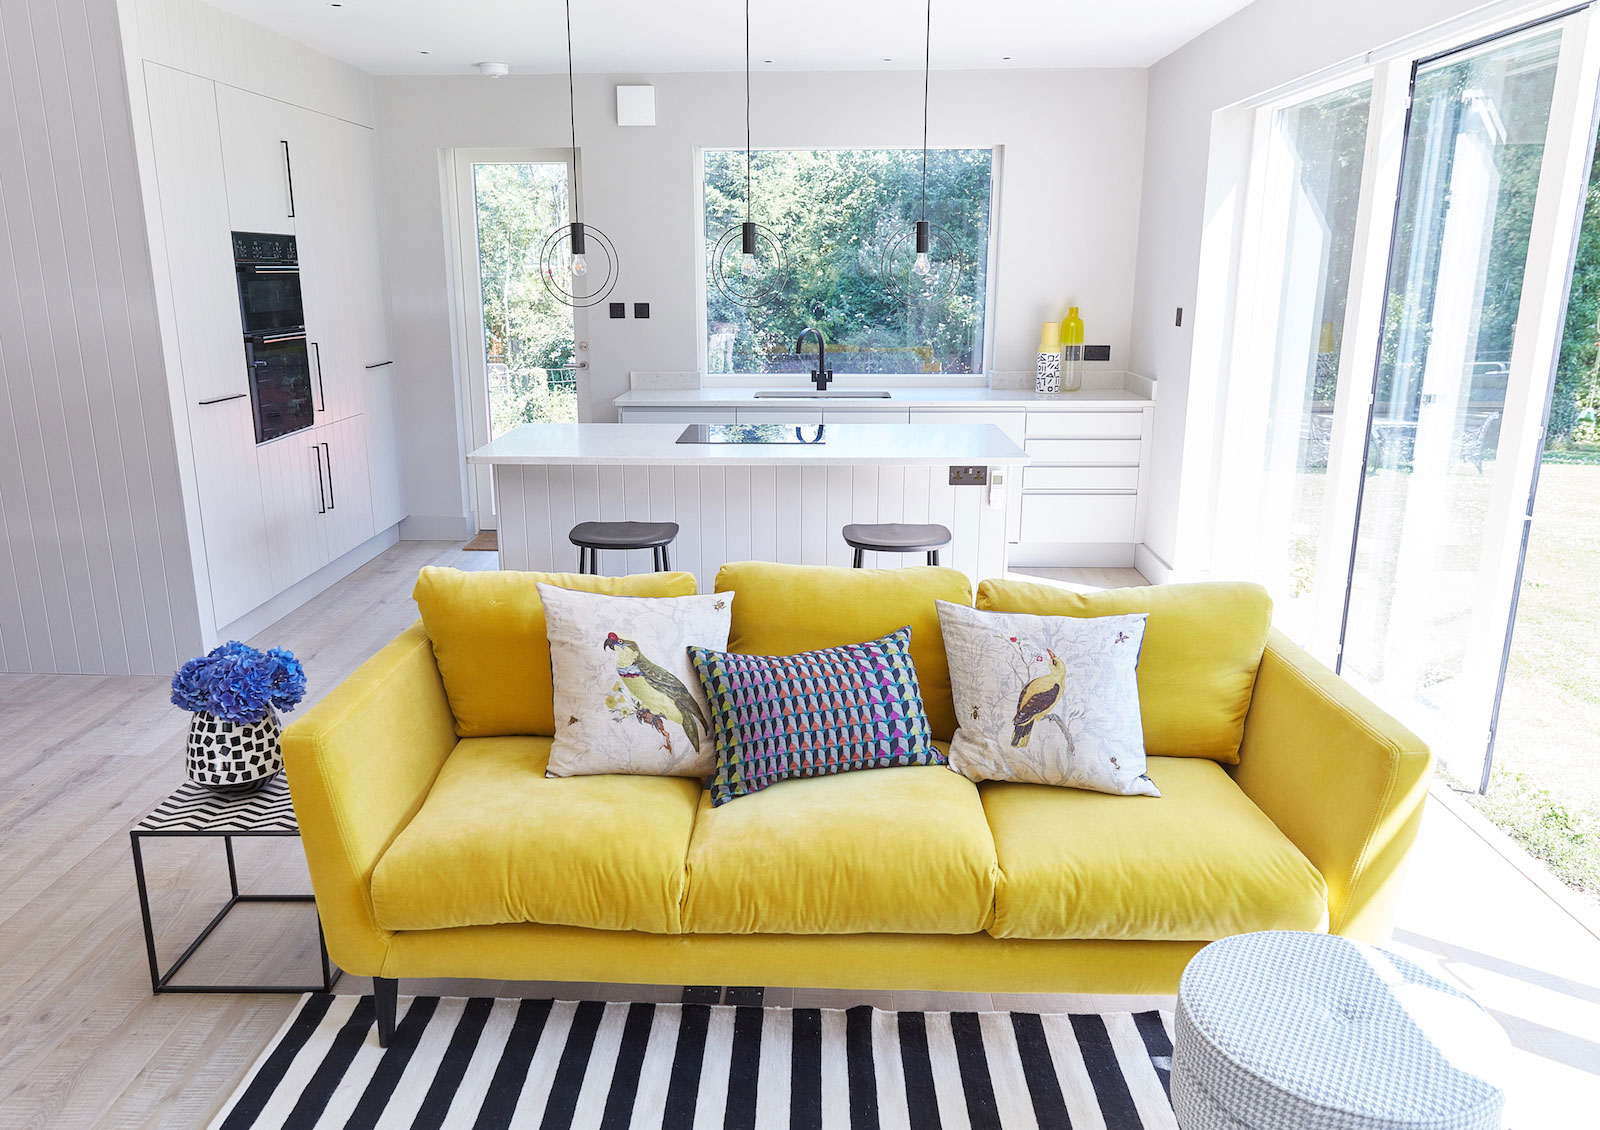 A Canary Yellow Velevet Sofa Adds A Pop Of Colour To An All Great Interior.